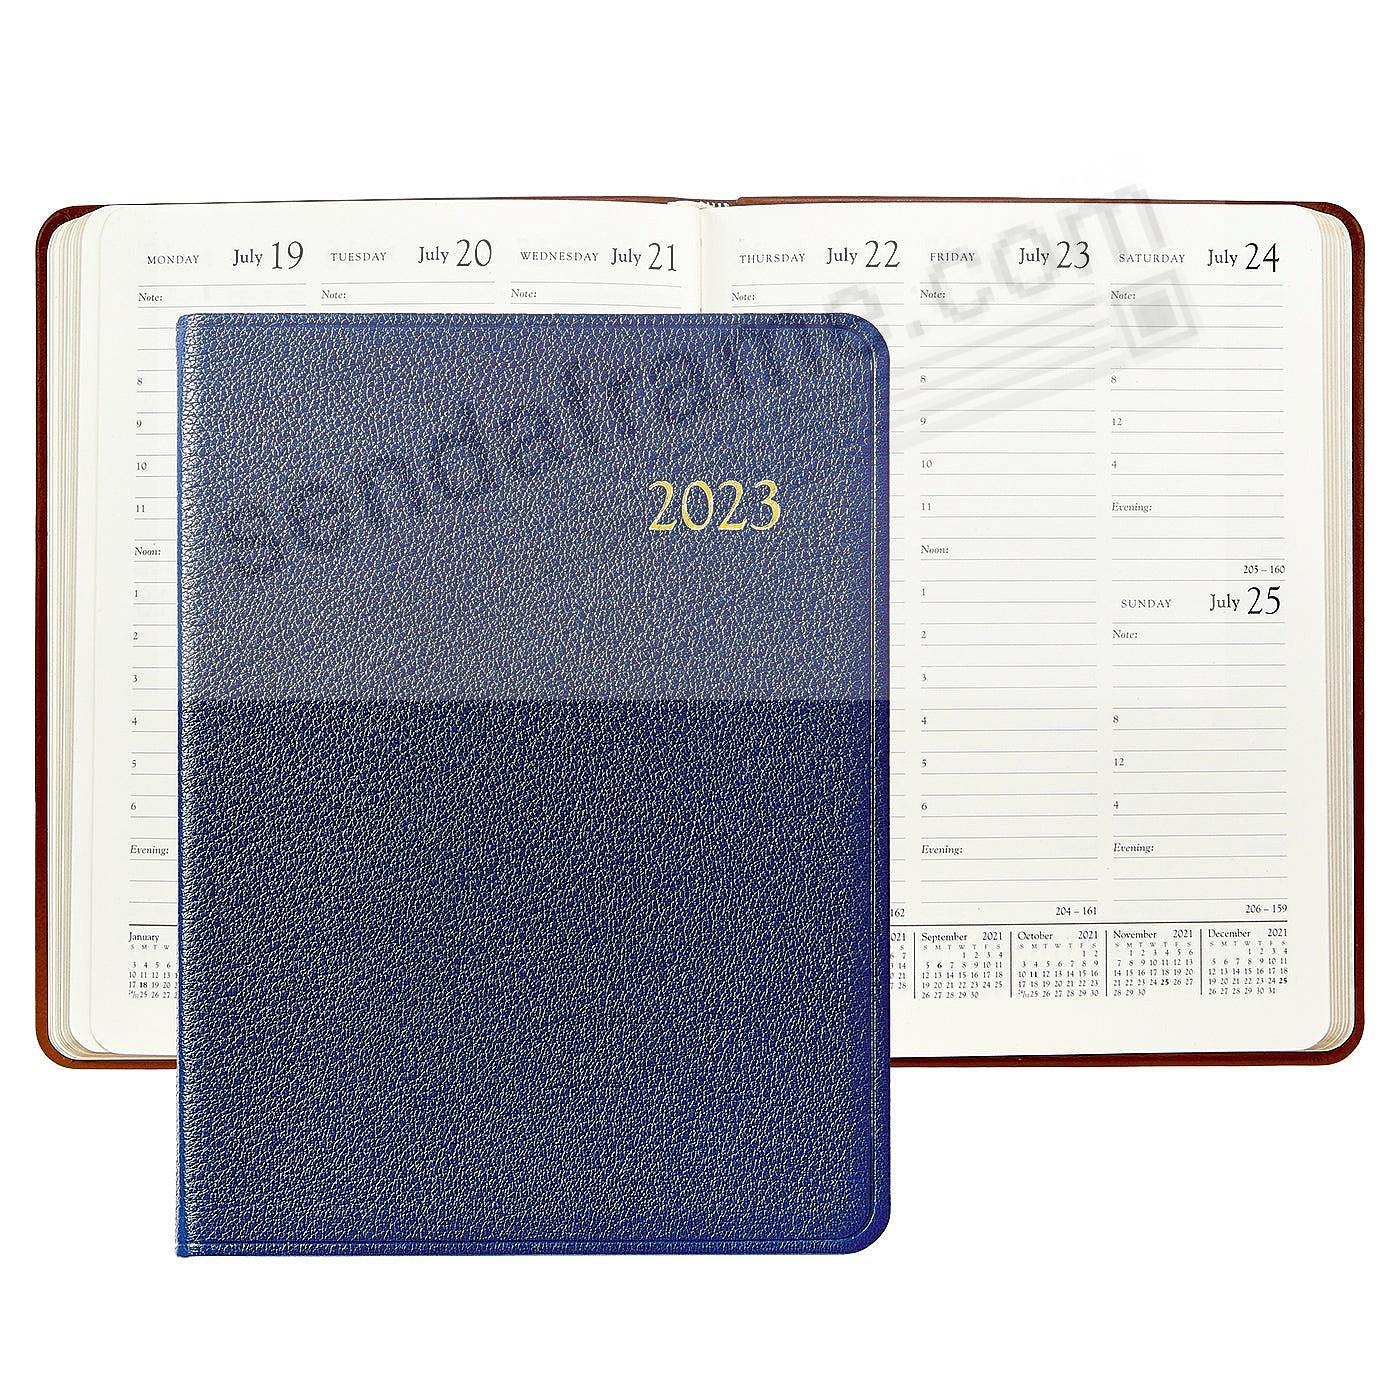 2020 INDIGO-BLUE Goatskin Leather 9in Desk Diary by Graphic Image™